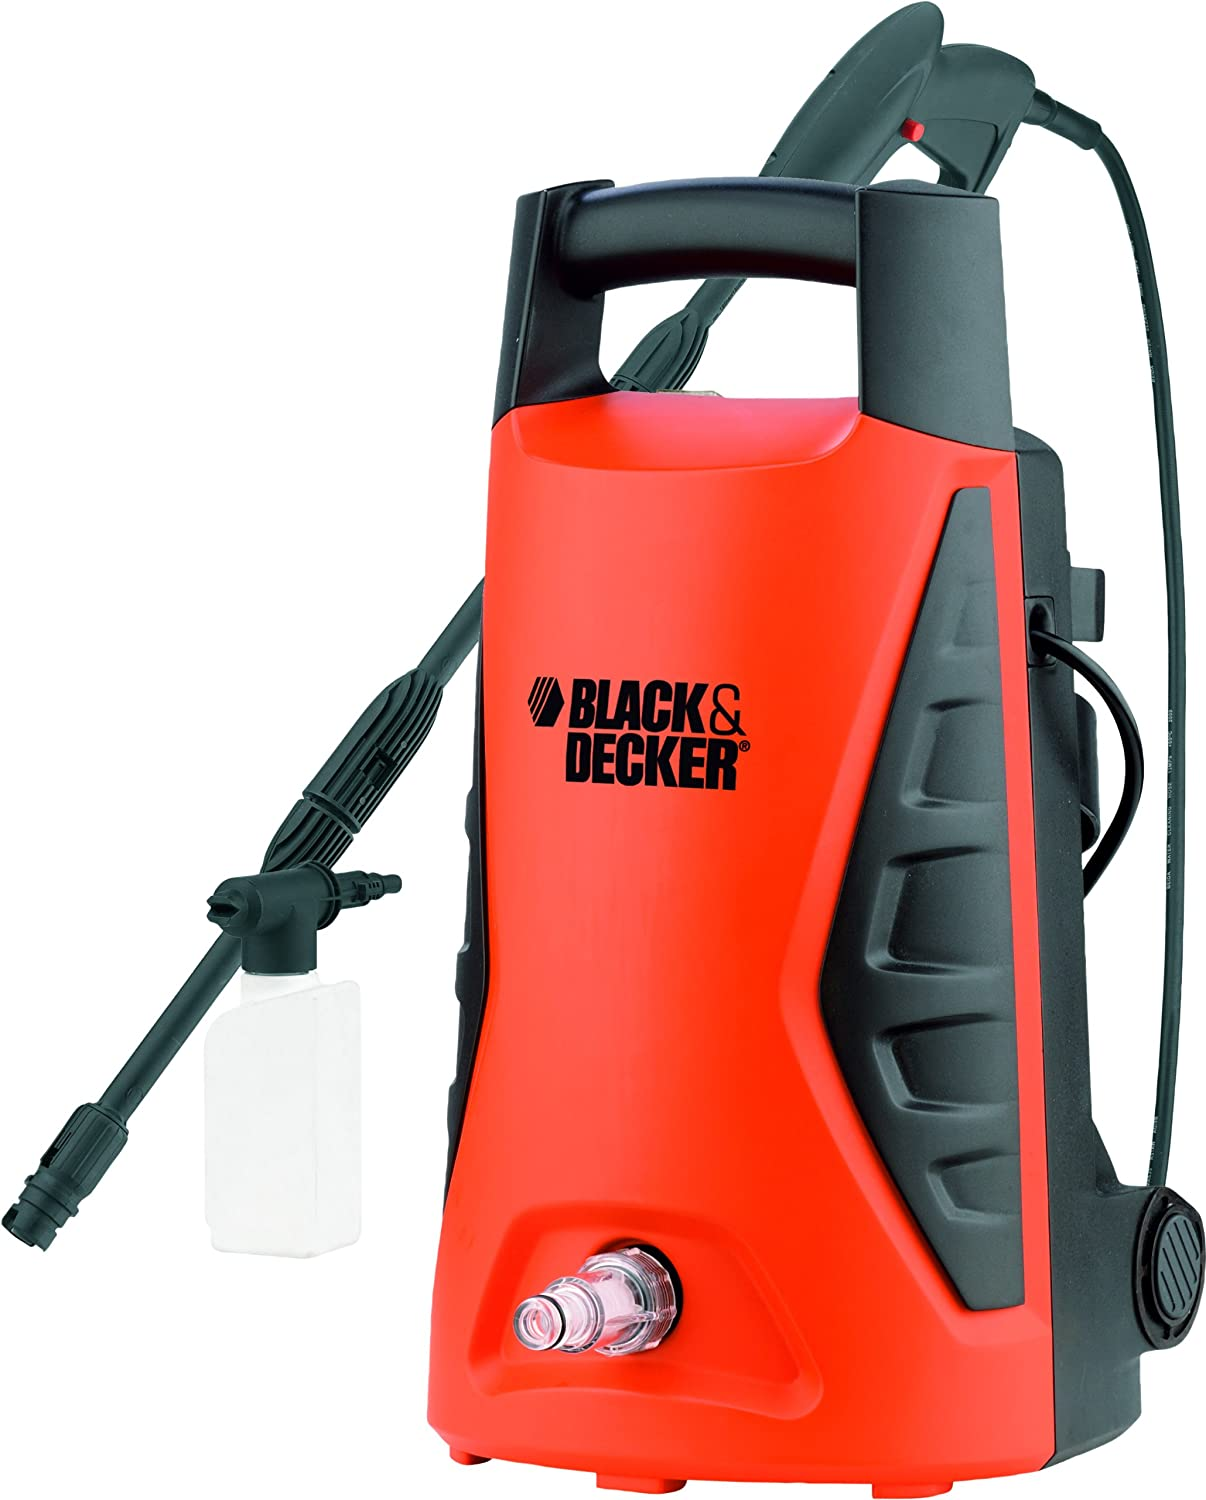 Black & Decker PW1370 100-Bar Pressure Washer Rs.5999 From Amazon